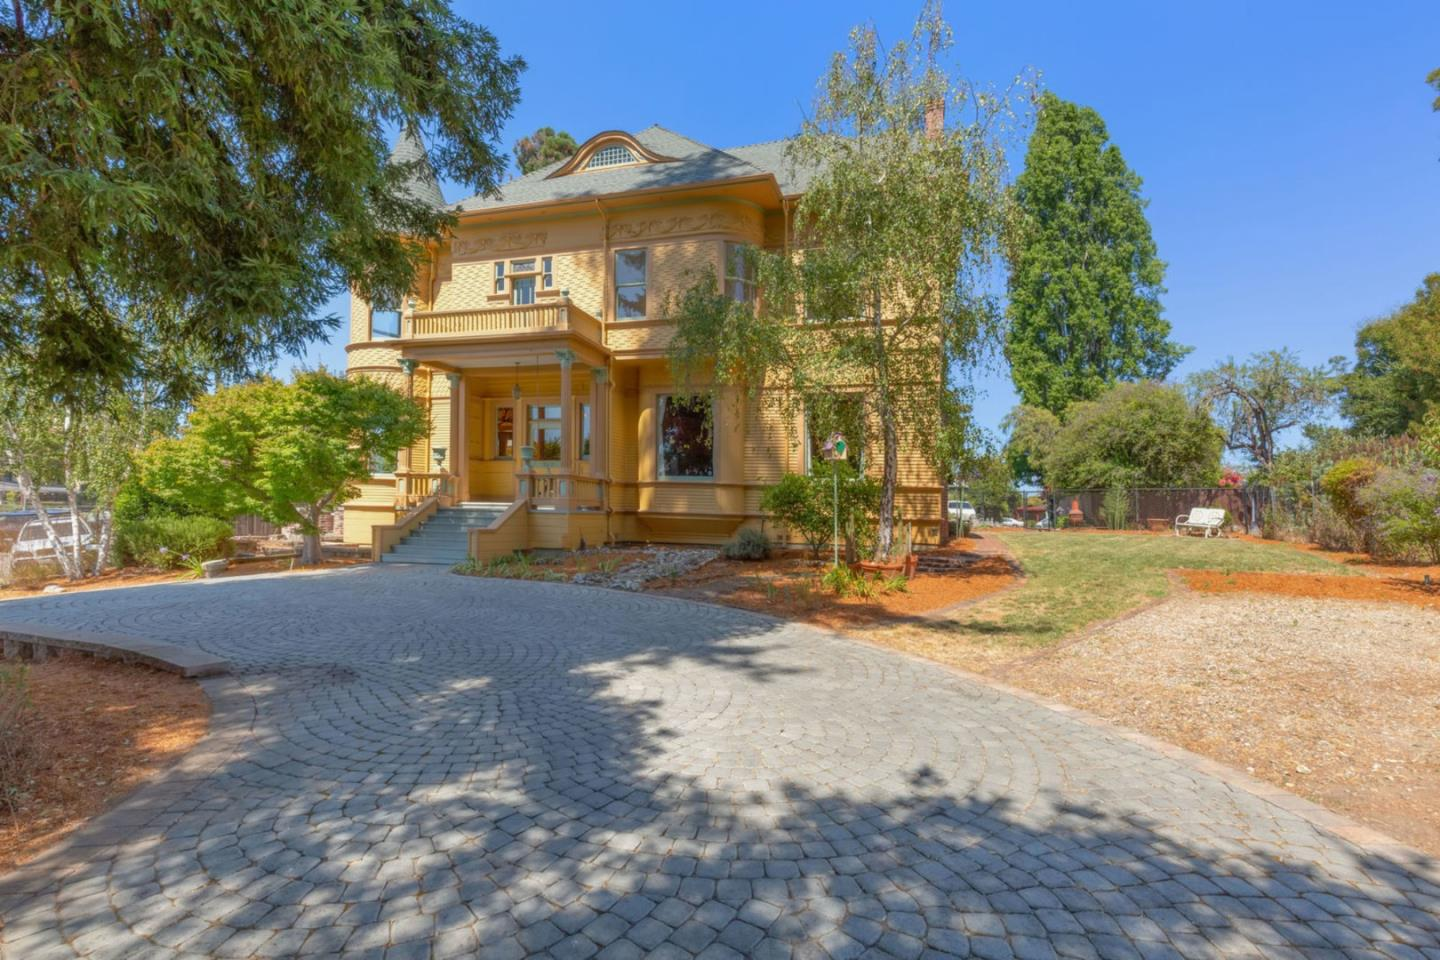 520 Soquel Avenue Santa Cruz, CA 95062 - MLS #: ML81717551